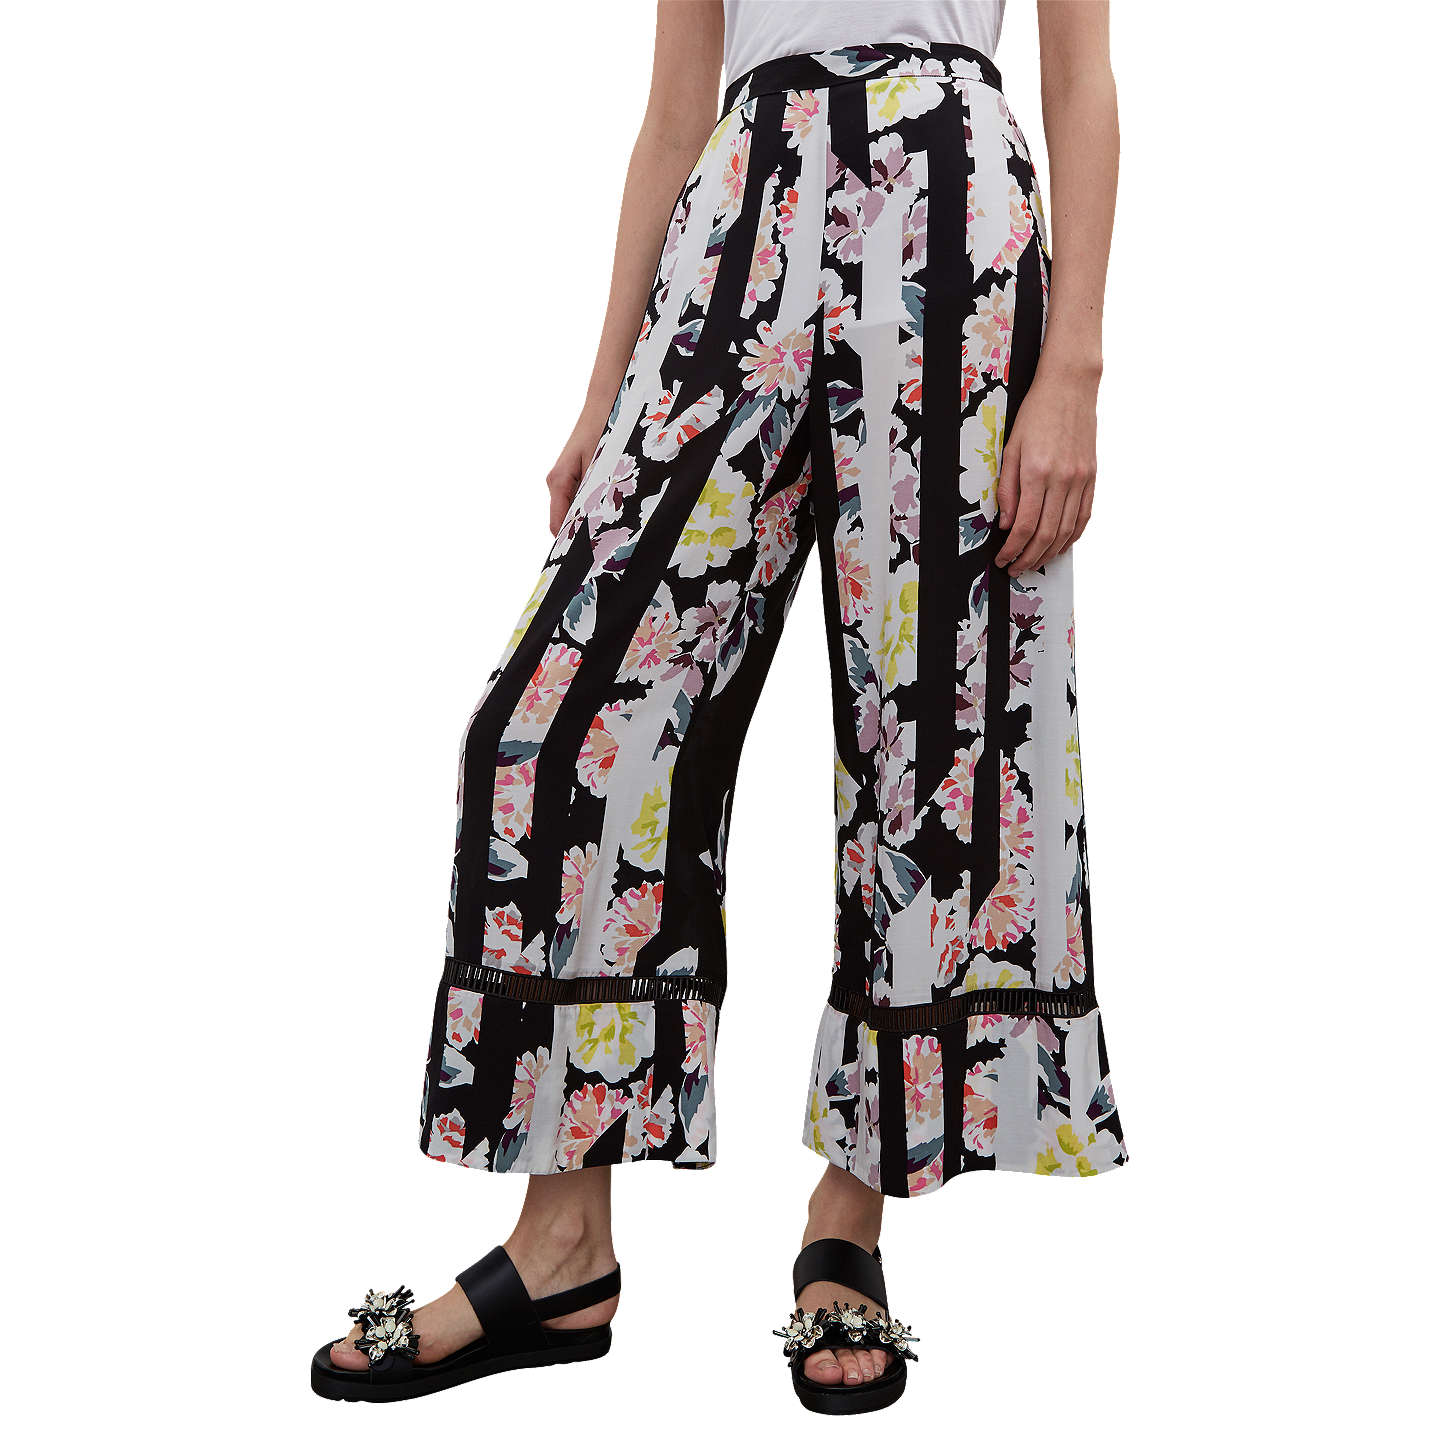 BuyFrench Connection Enoshima Culotte Trousers, Black/Multi, 6 Online at johnlewis.com